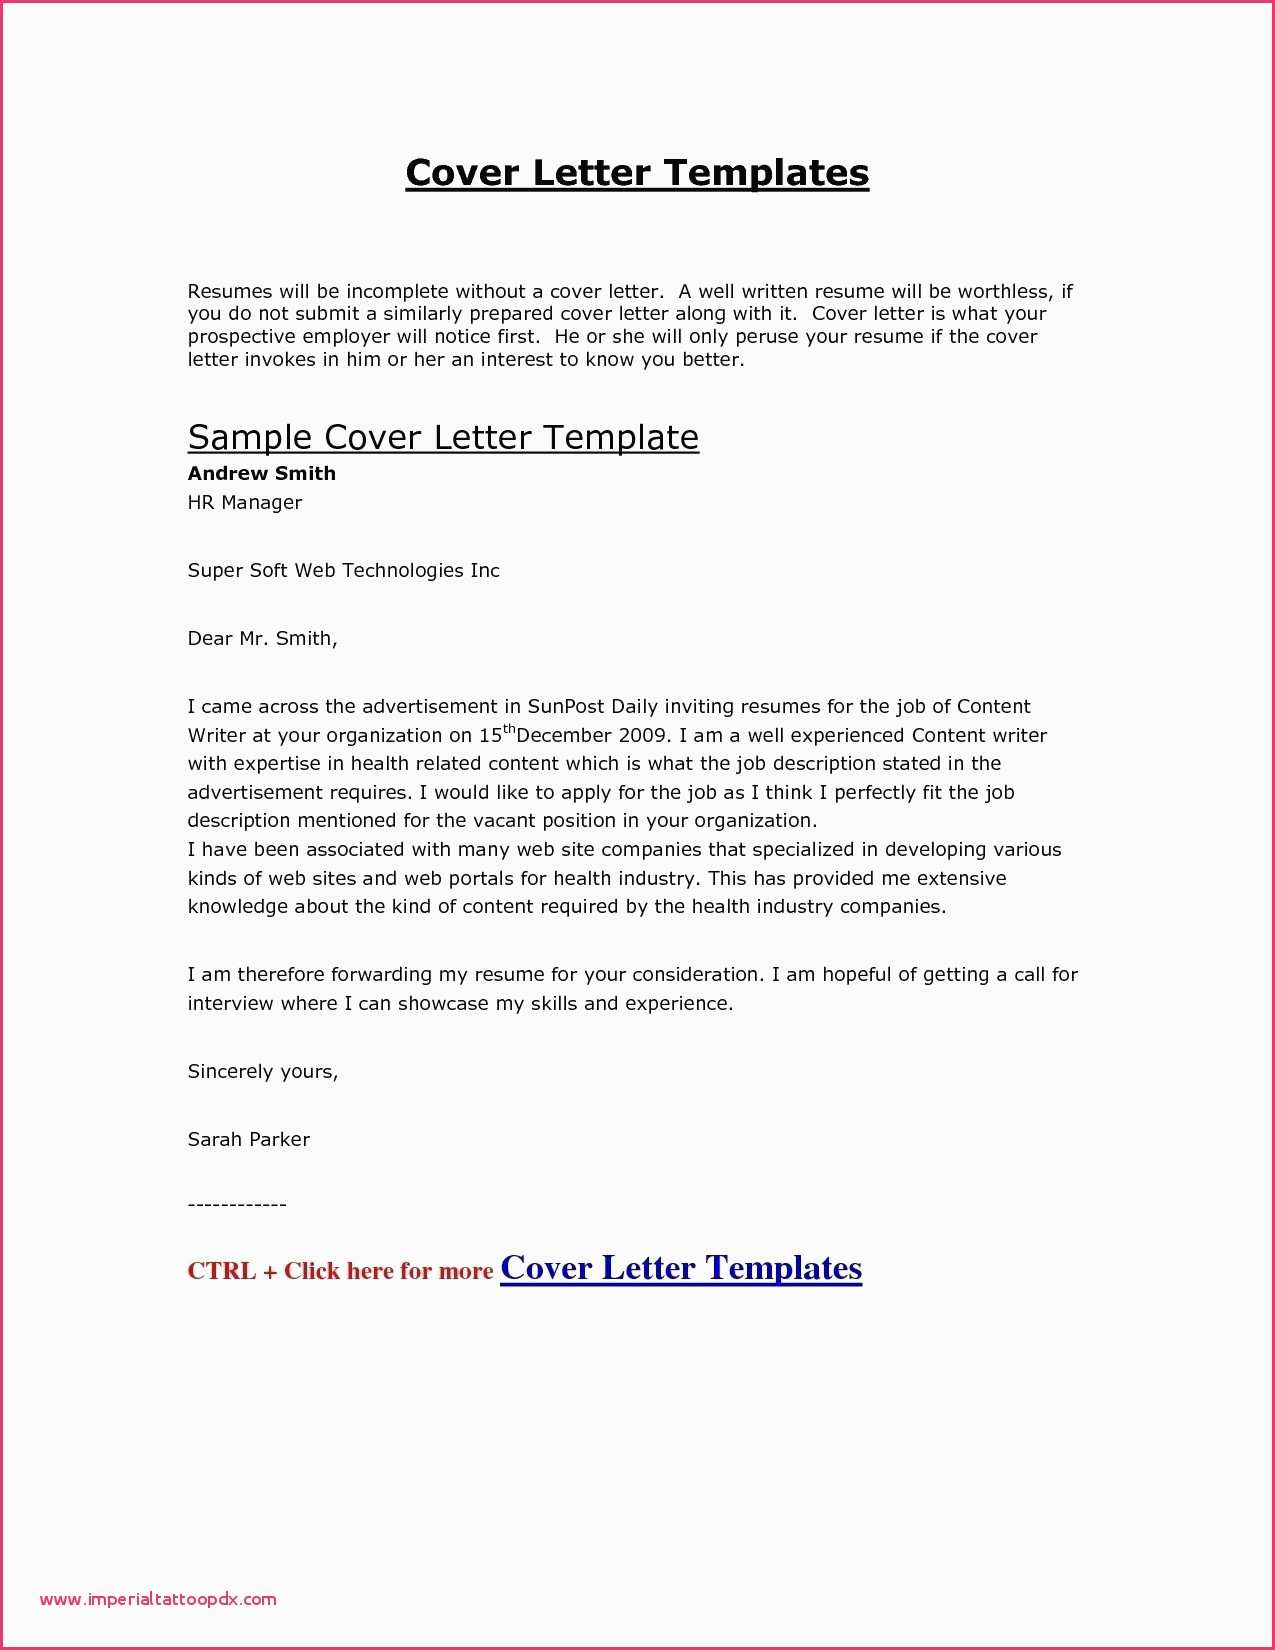 Smu Resume Template - Samples Cover Letters for Resumes Cfo Resume Template